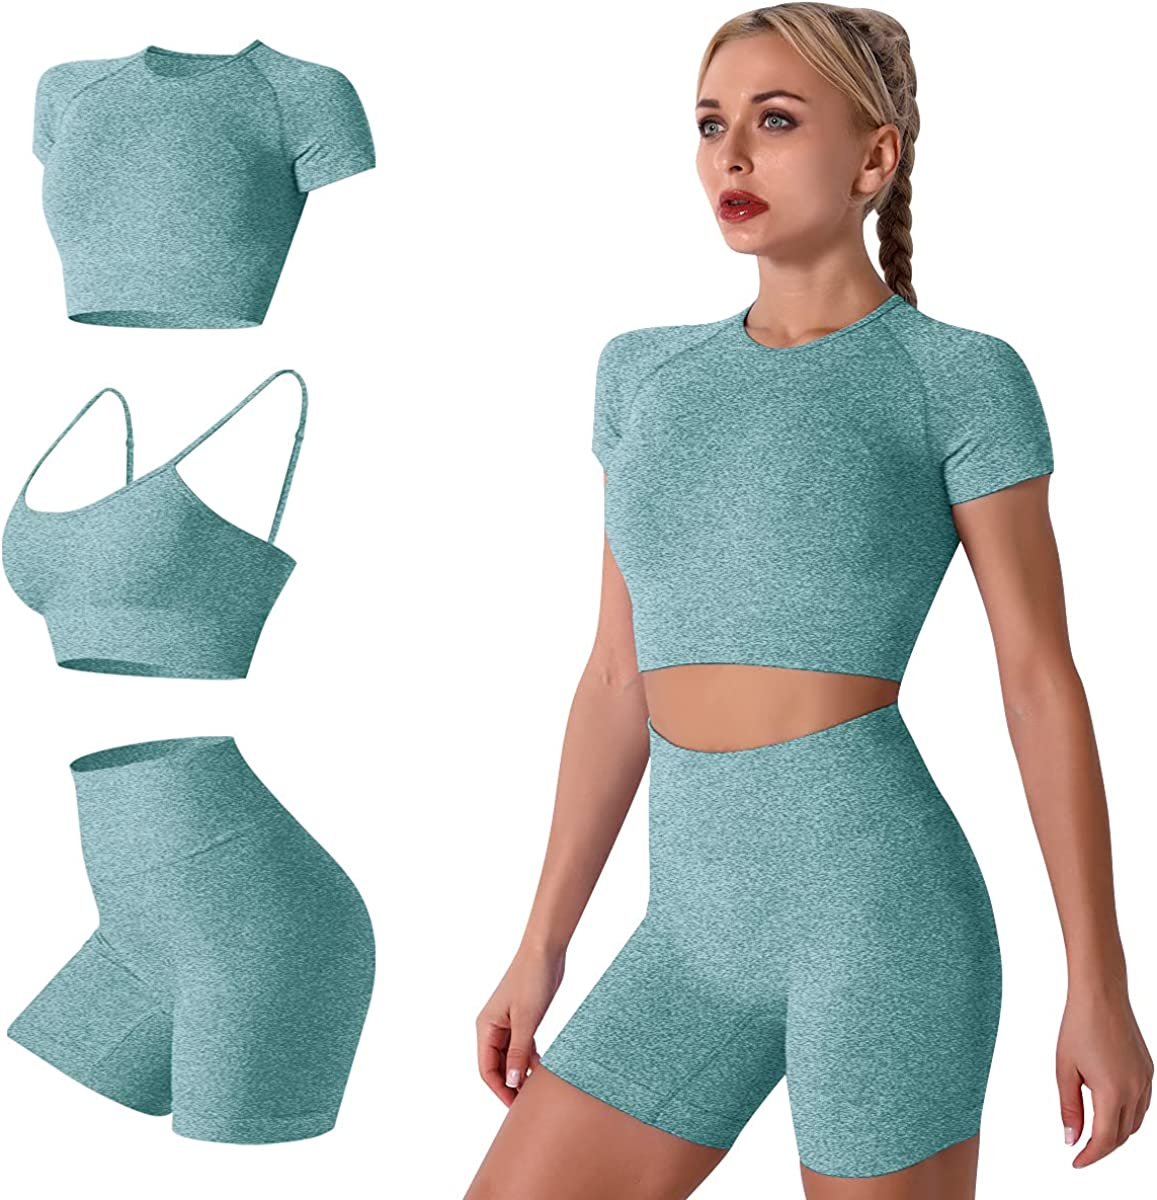 Women Seamless Yoga Outfits 2 Piece Workout Short Sleeve Crop Top with High Waisted Running Shorts Sets Activewear at  Women's Clothing store